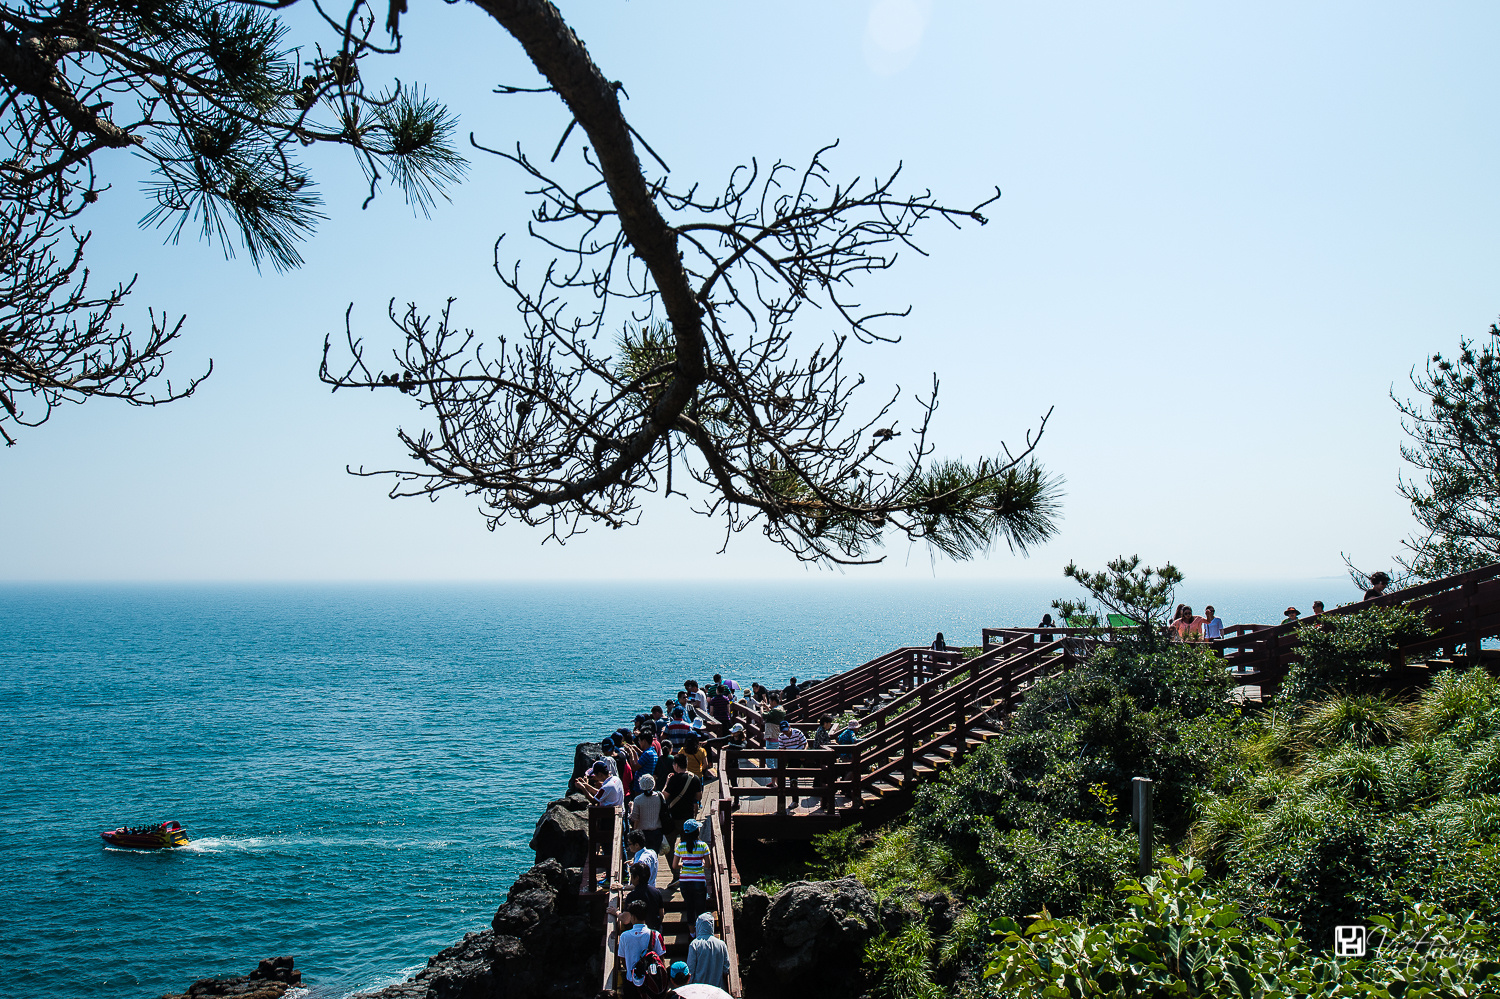 Rock disk pathway for tourists